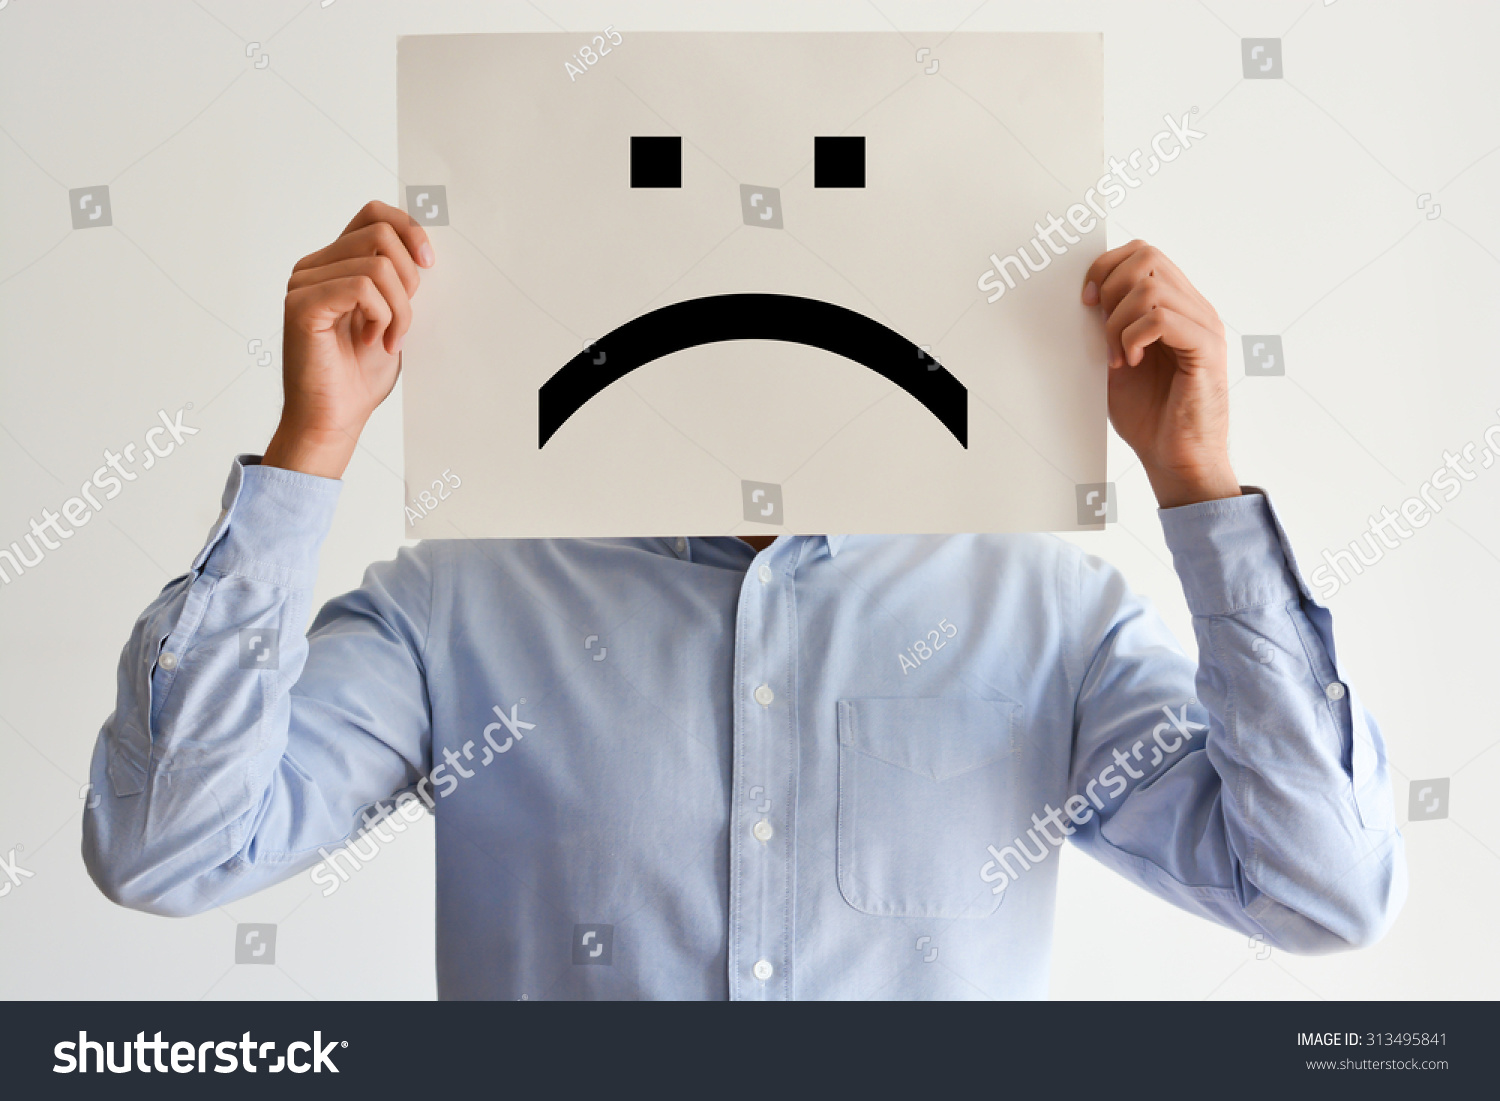 Unhappy employee or demotivated at working place #313495841